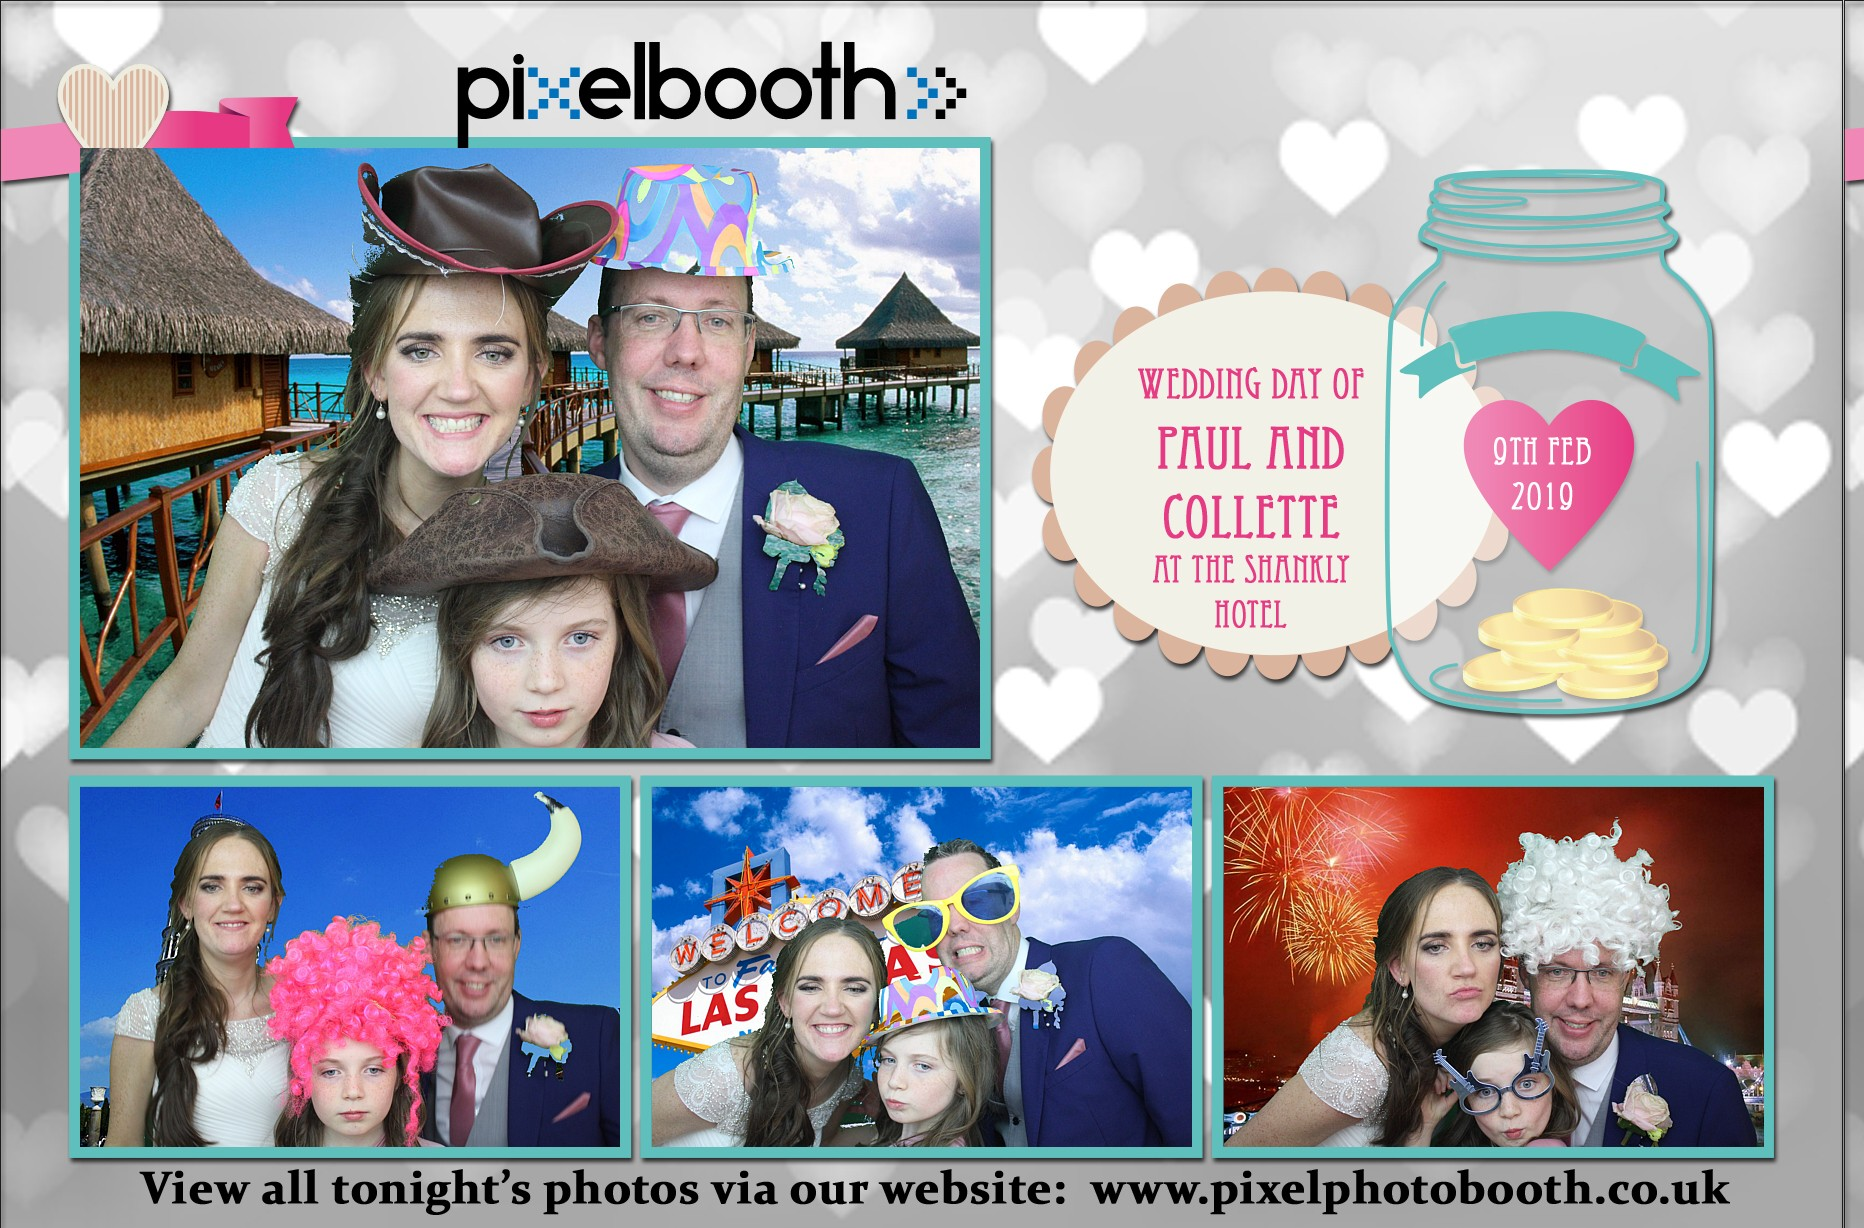 9th Feb 2019: Paul and Collette's Wedding at Bill Shanky Hotel